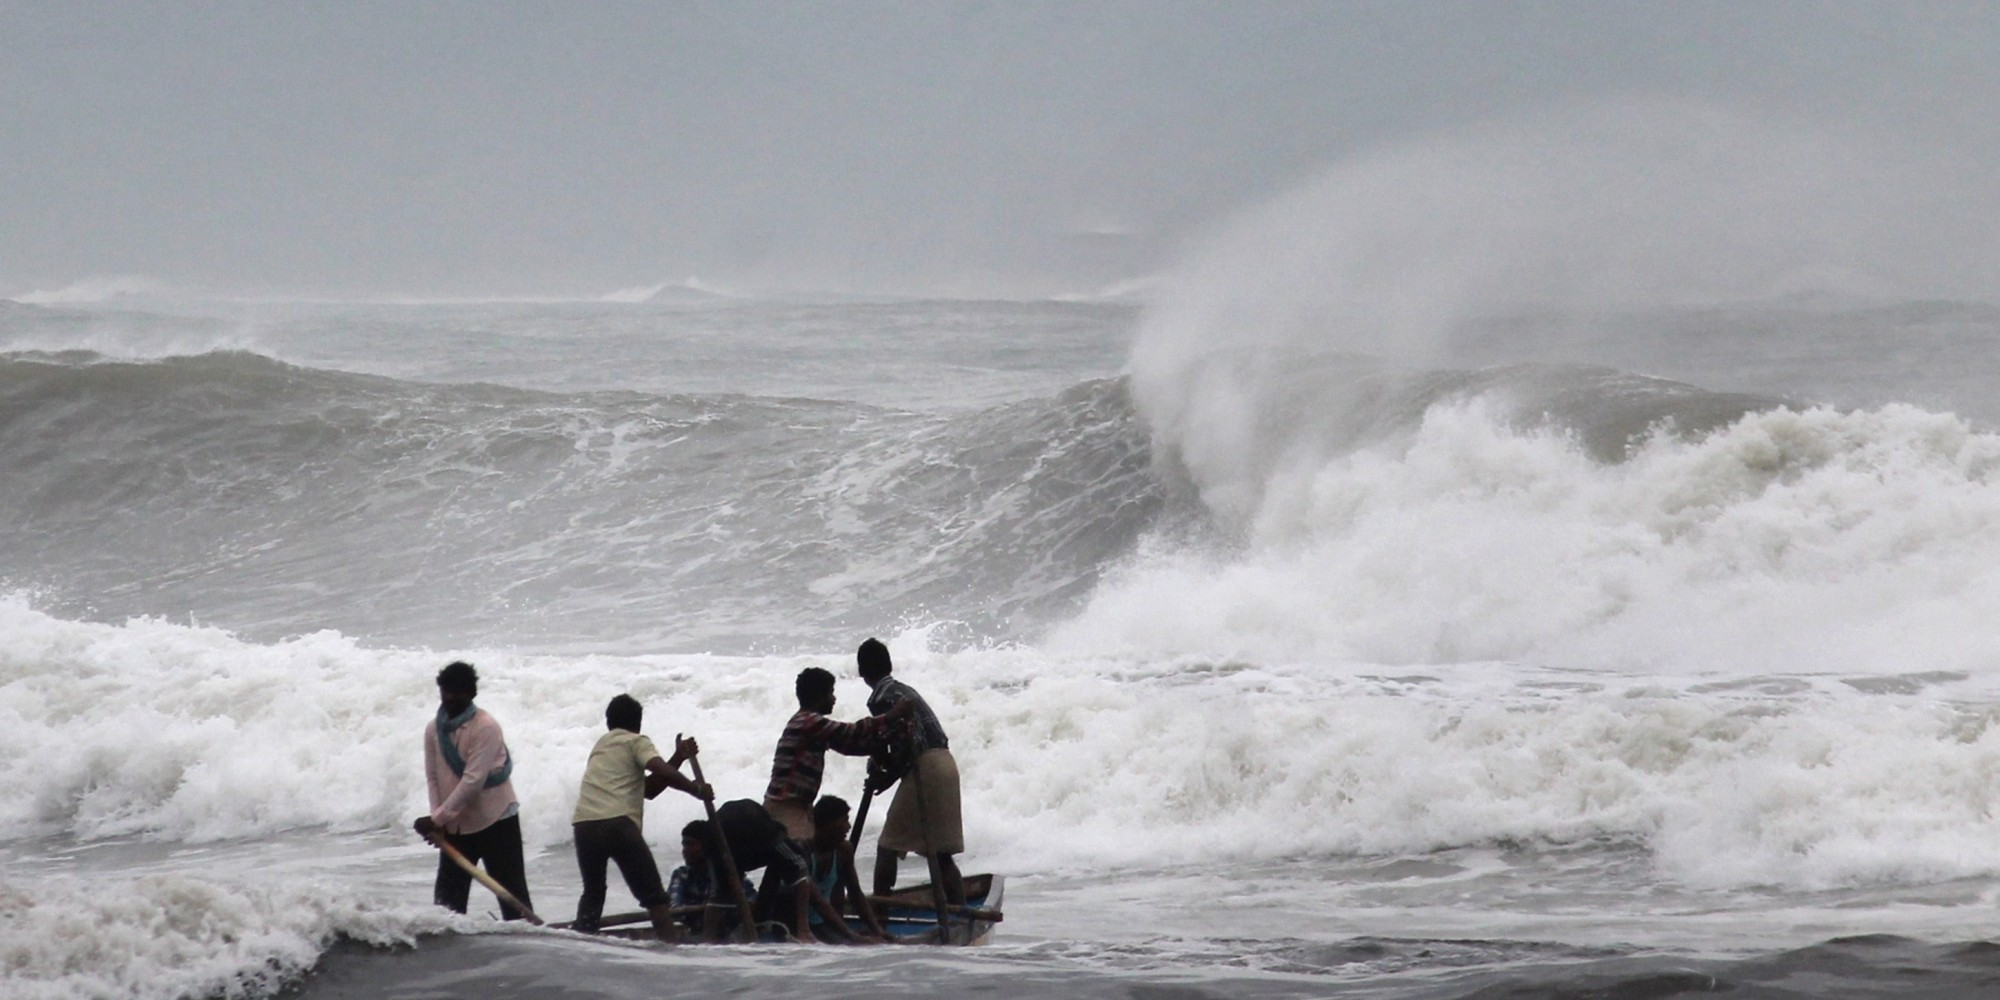 cyclone hudhud reaches peak strength as it batters india